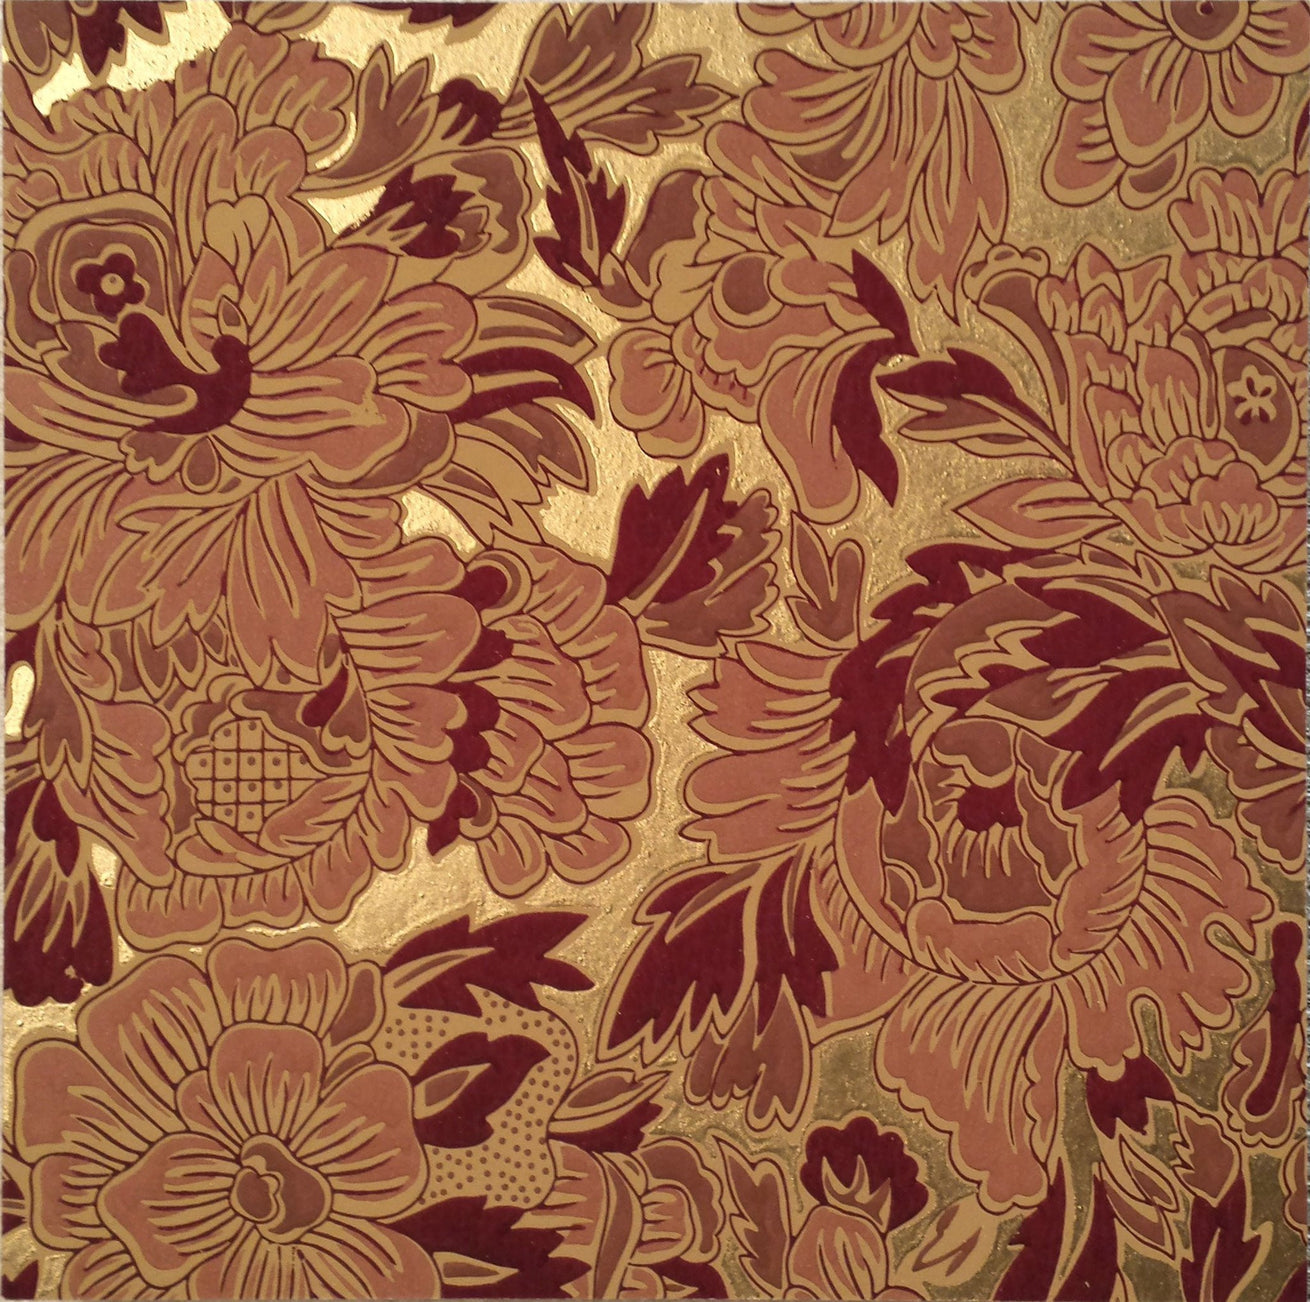 Burgundy Gilt Floral Sidewall - Mounted Antique Wallpaper Panel